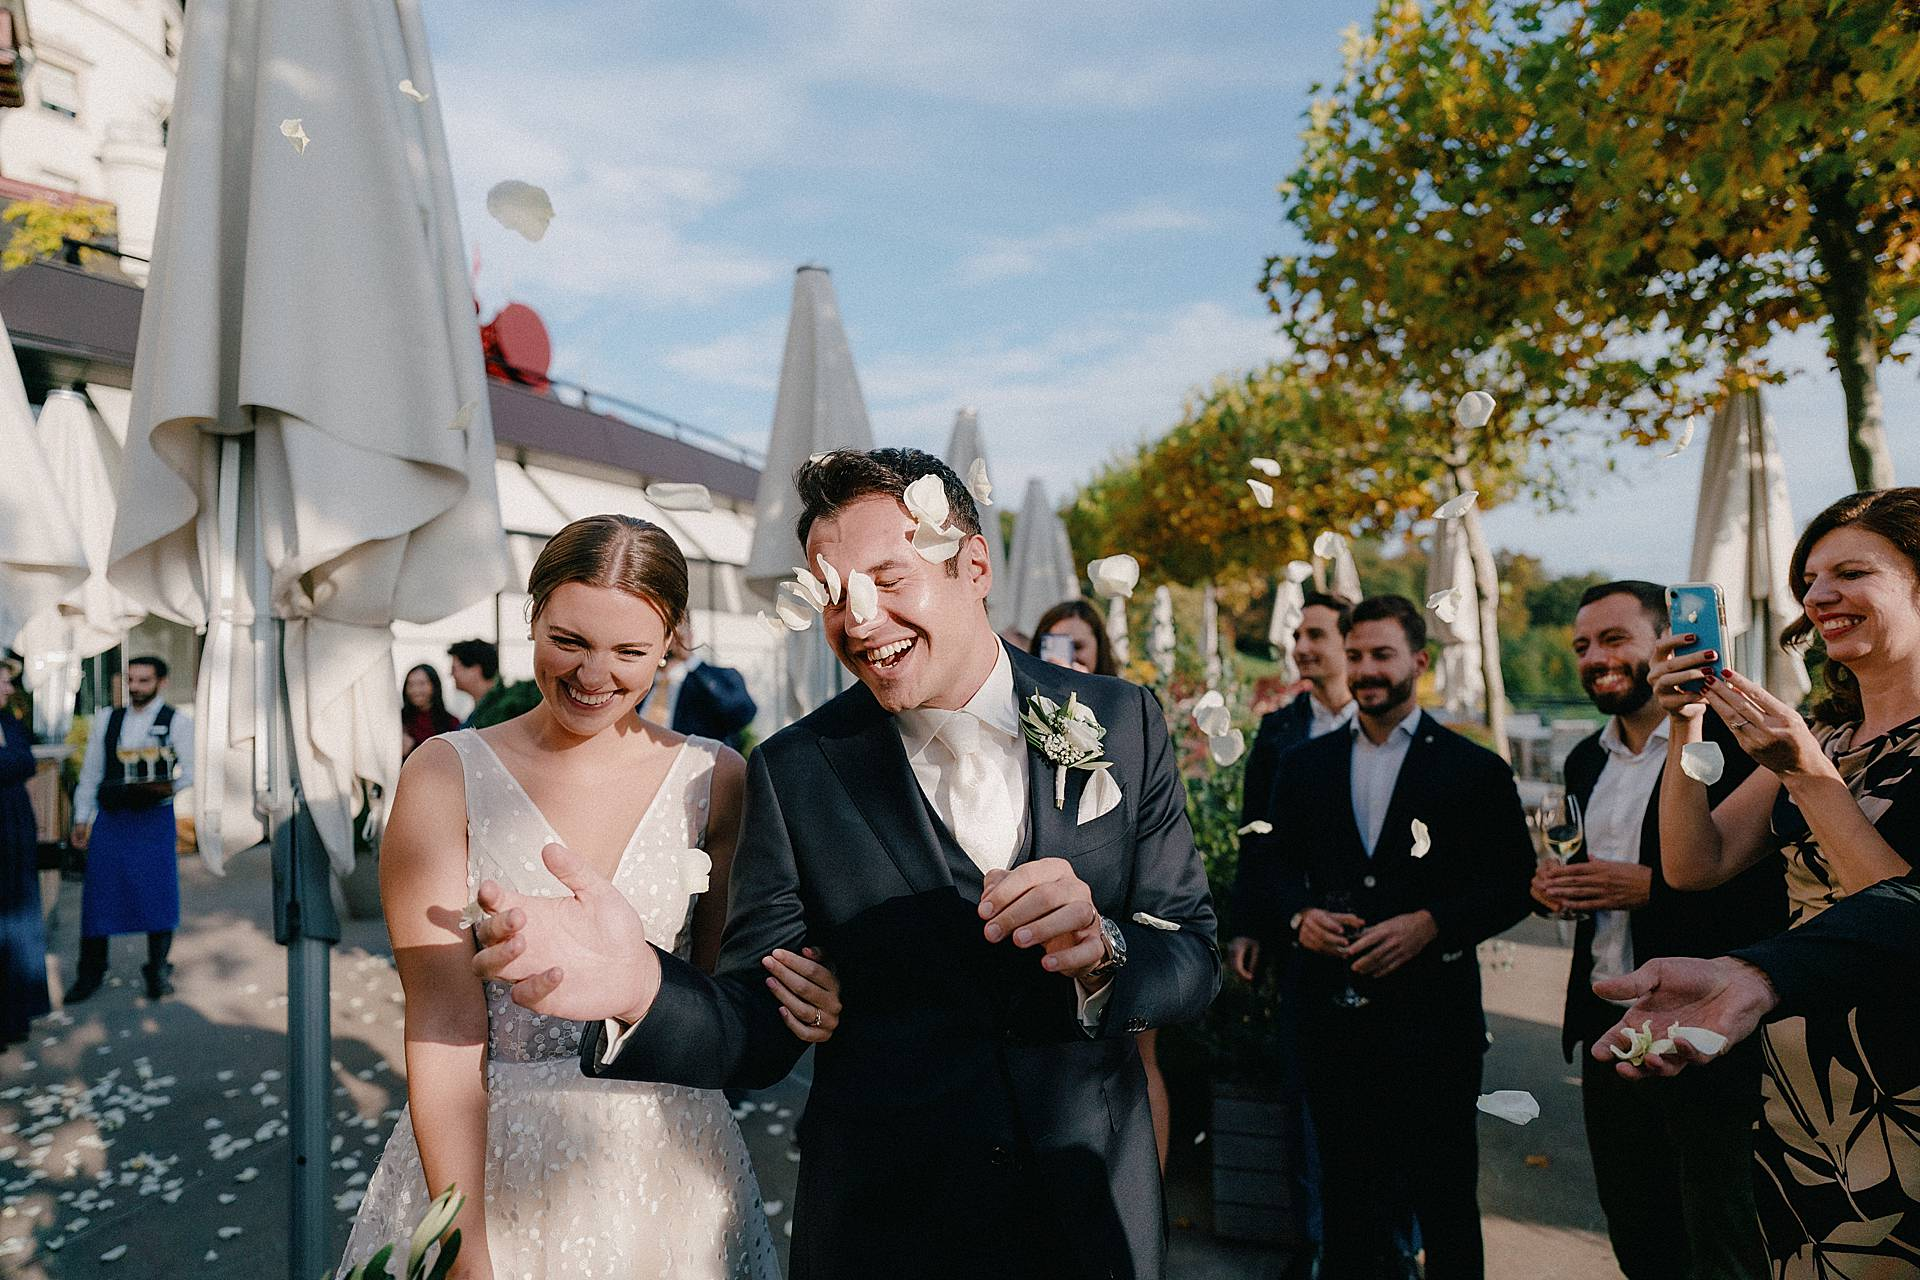 Zurich Dolder Grand Wedding Photographers | The bride and groom are married and welcomed by their guests